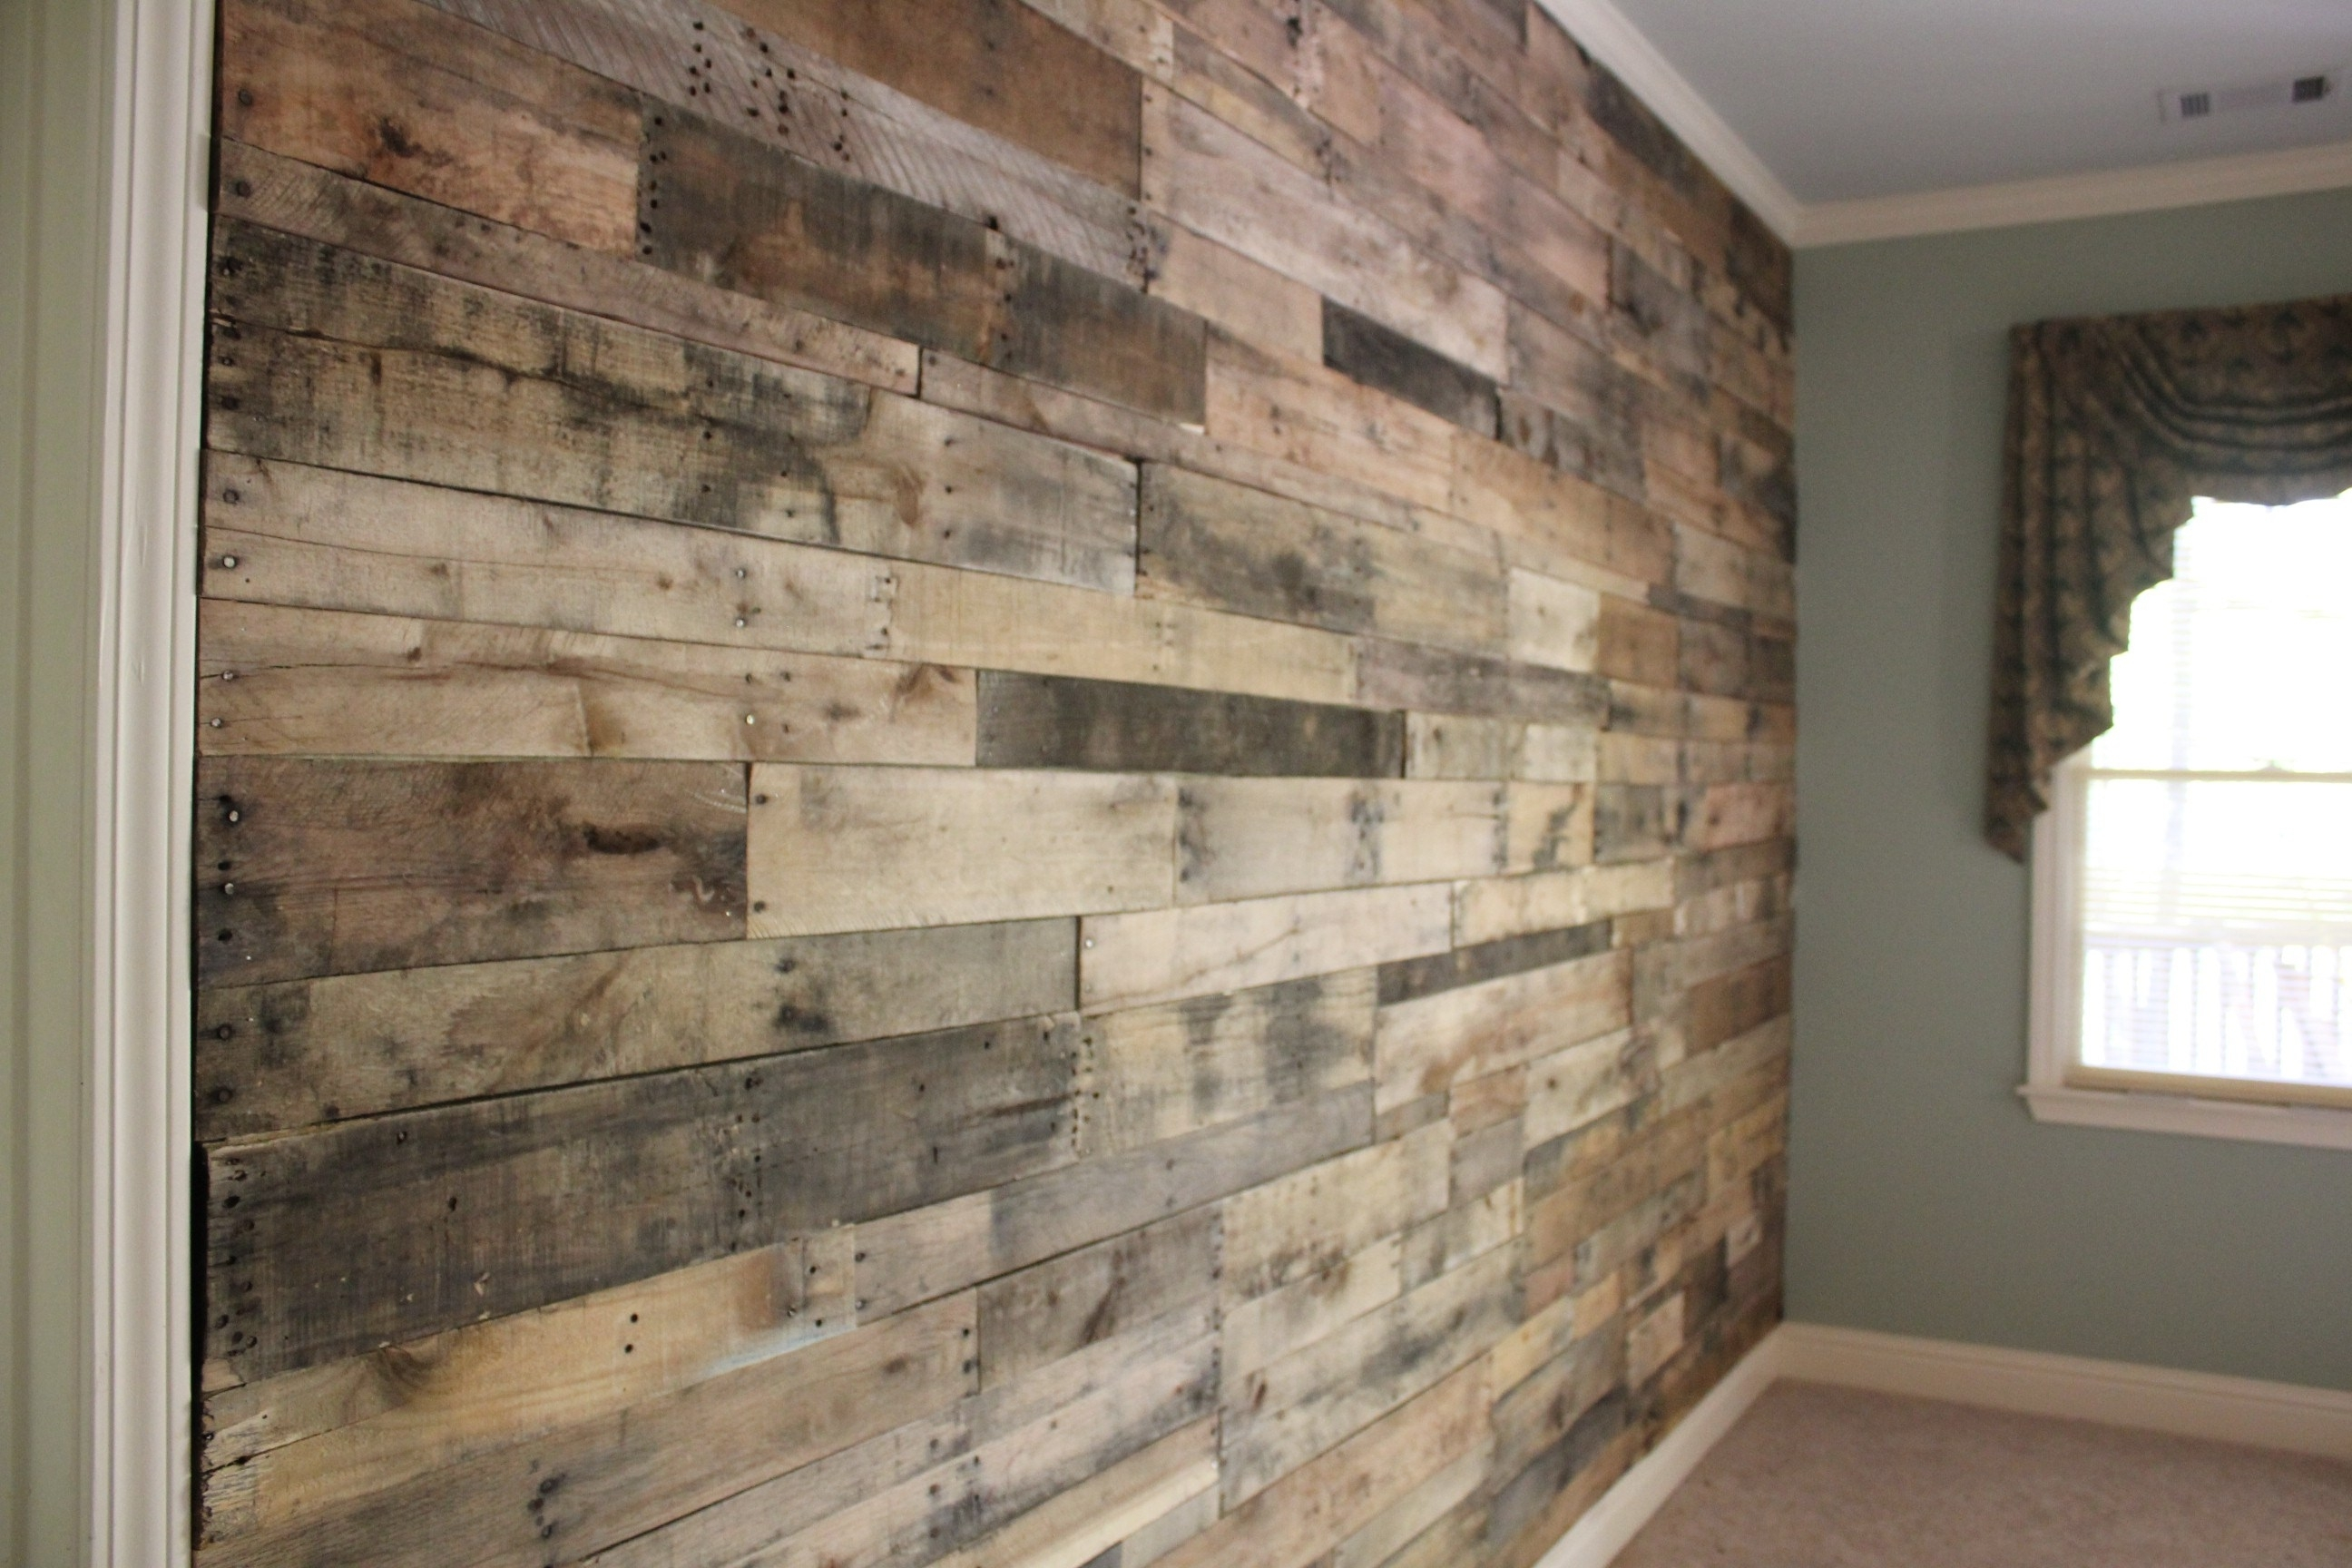 Wood Wall Accent Amazing Home Interior Design Ideasjimmy Within Most Recent Reclaimed Wood Wall Accents (View 12 of 15)